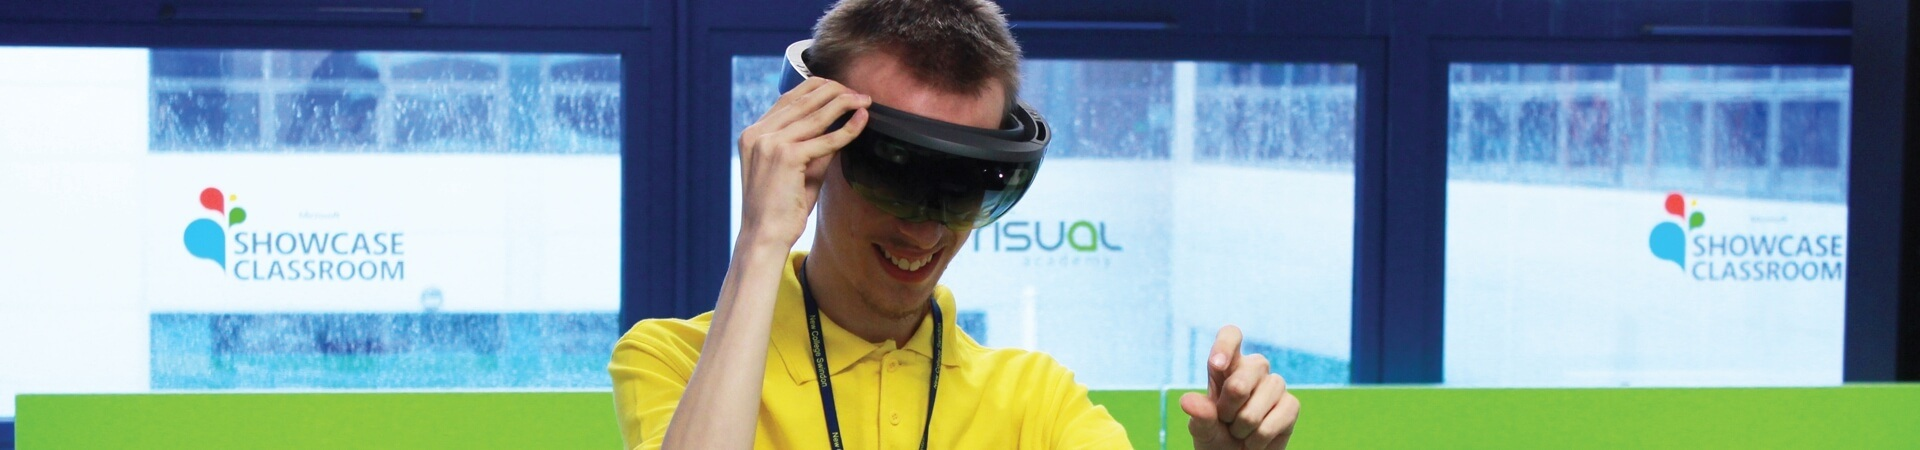 Student using a VR headset